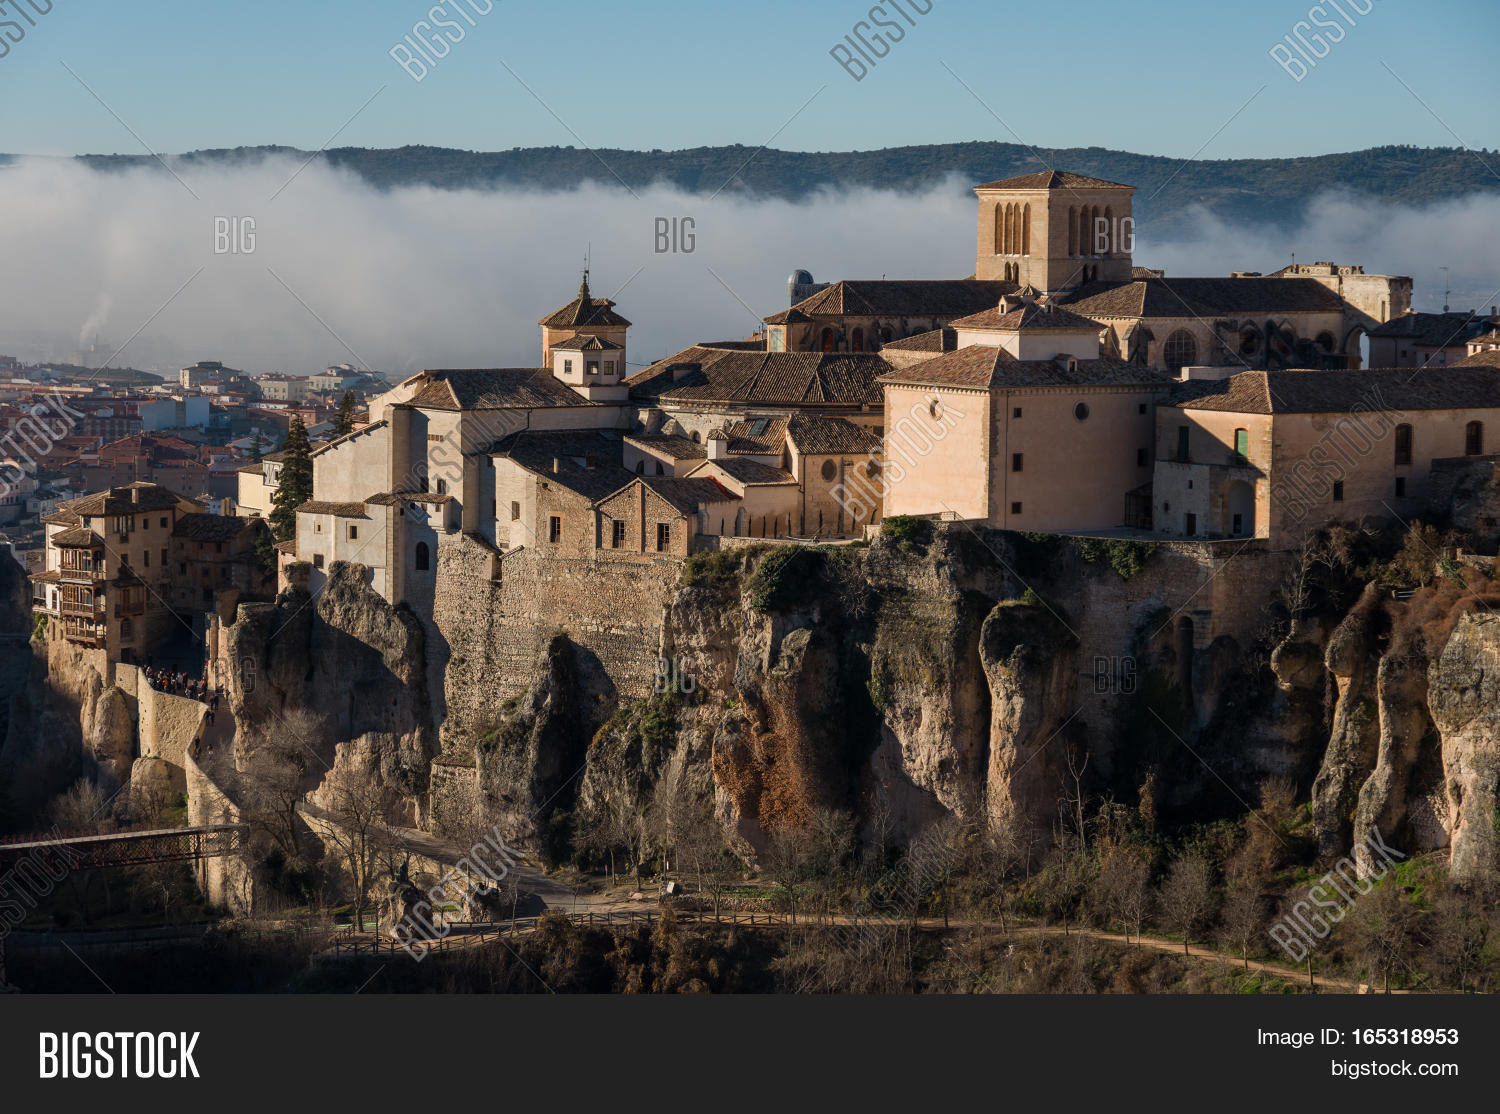 ancient,architecture,attraction,building,castilla,city,cityscape,cliff,cuenca,culture,day,europe,european,famous,hanging,heritage,historic,homes,house,landmark,landscape,mancha,medieval,monument,mountain,nature,nobody,old,outdoor,picturesque,road,rock,rural,scenery,scenic,spain,spanish,tourism,touristic,town,travel,unesco,valley,view,world